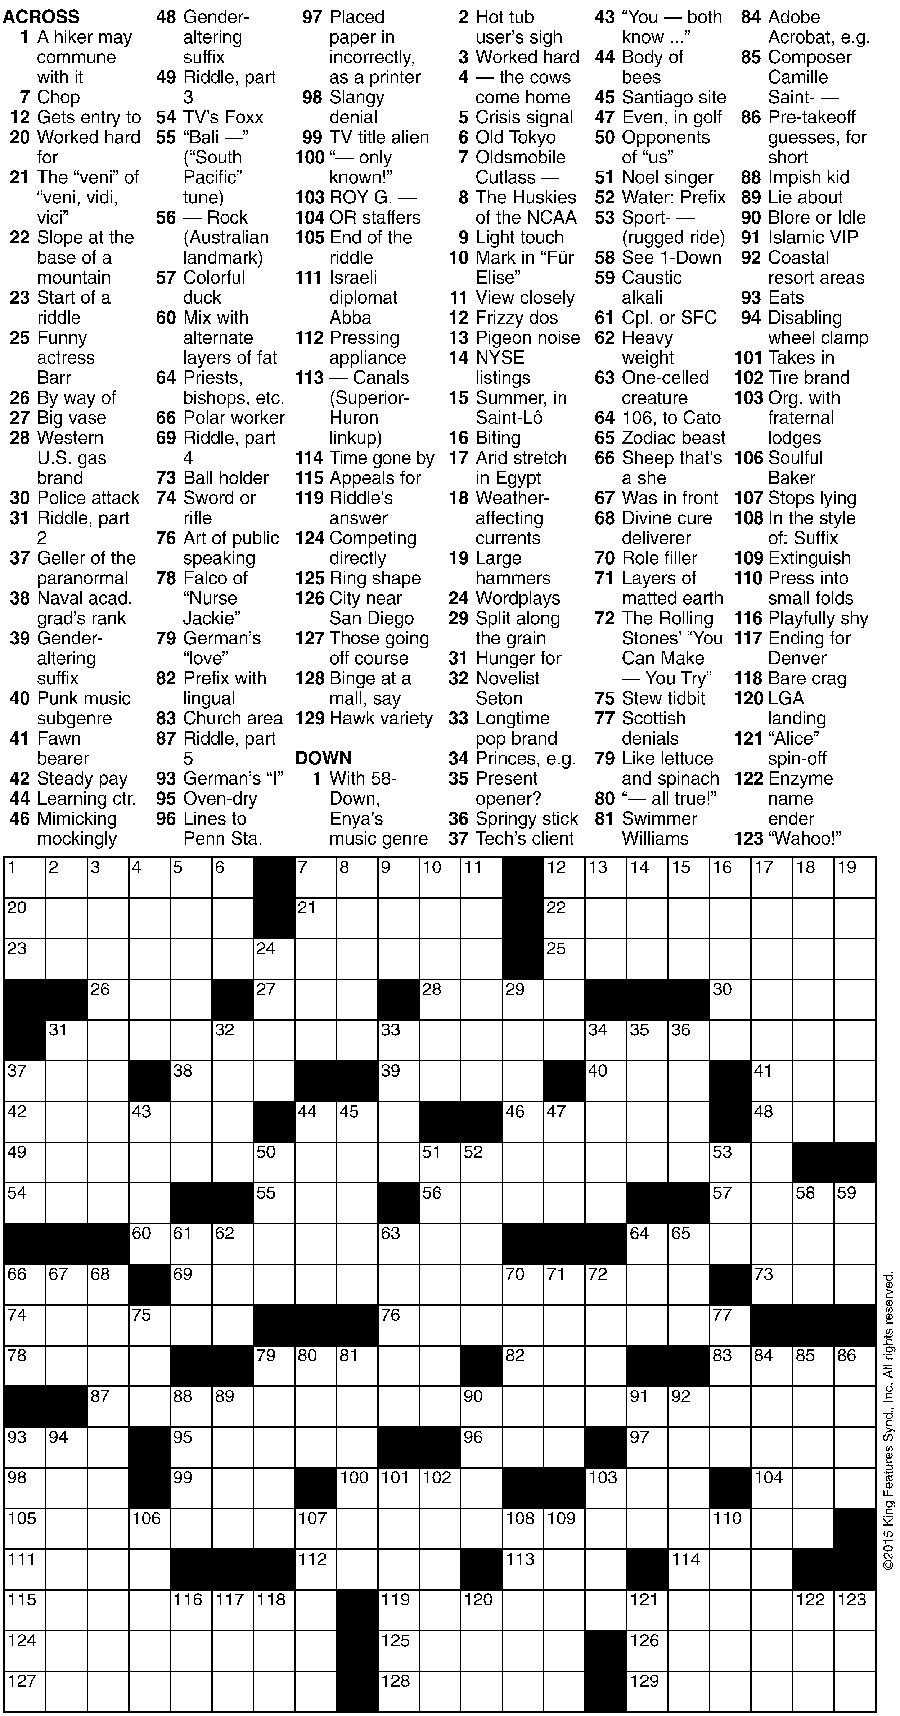 crossword-1-1-36d0a7eb6193f4db.jpg